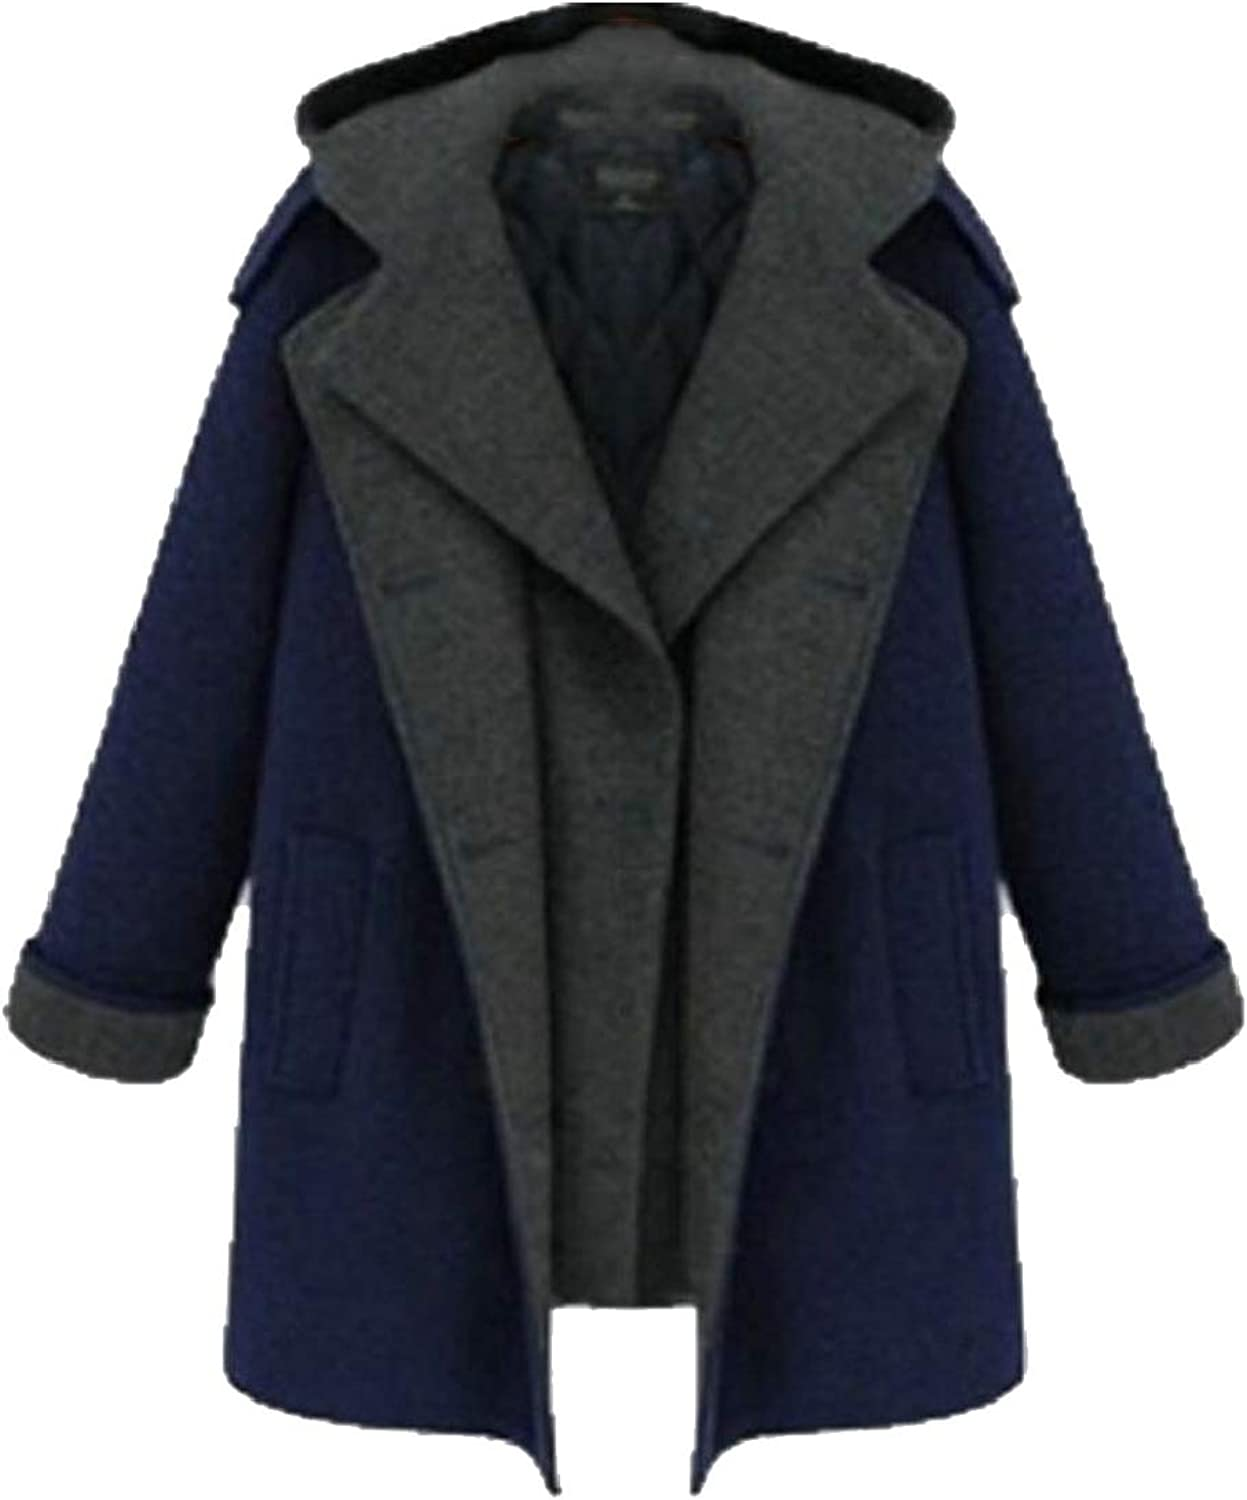 QDCACA Womens Fake Two DoubleBreasted Thicken Woolen Coat Outwear Overcoat